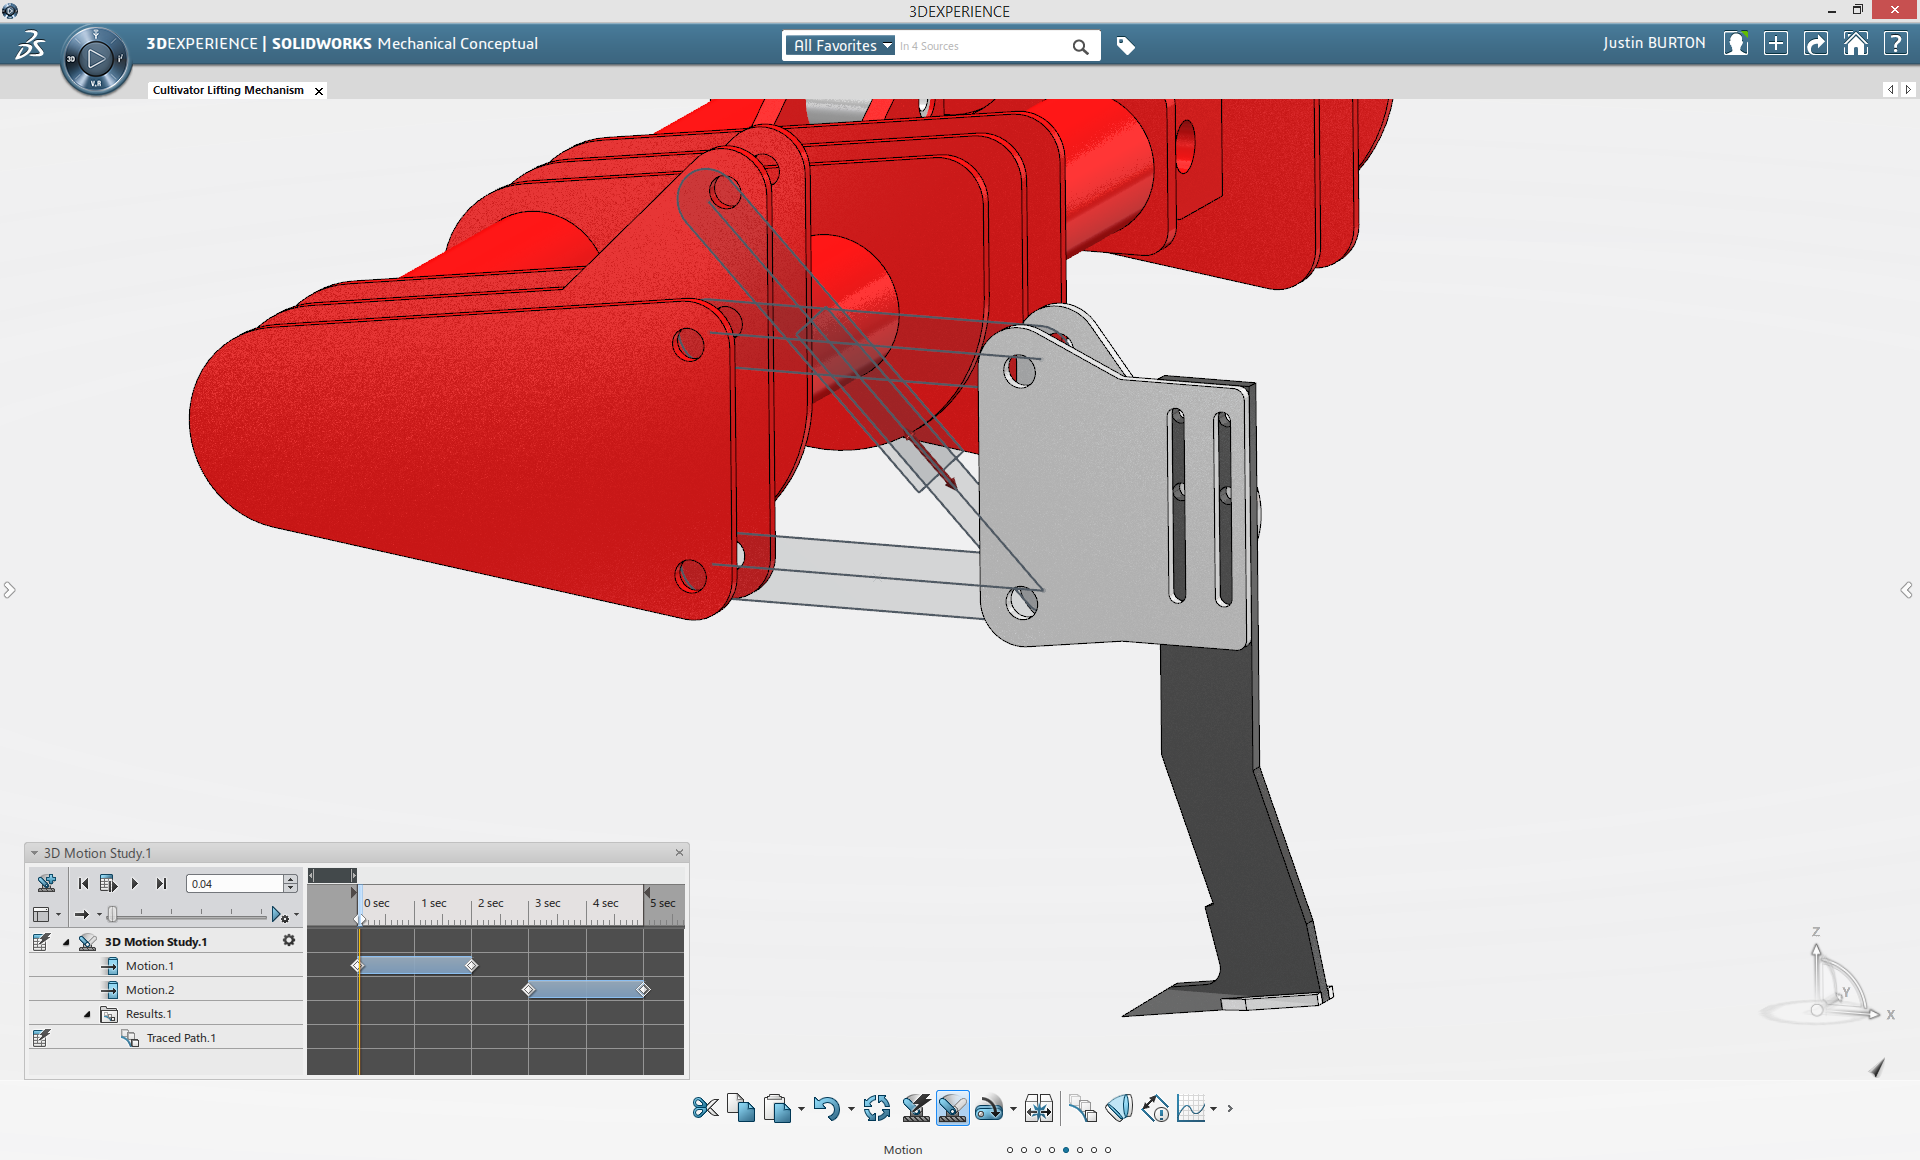 Eight Things You Need to Know About SolidWorks Mechanical Conceptual